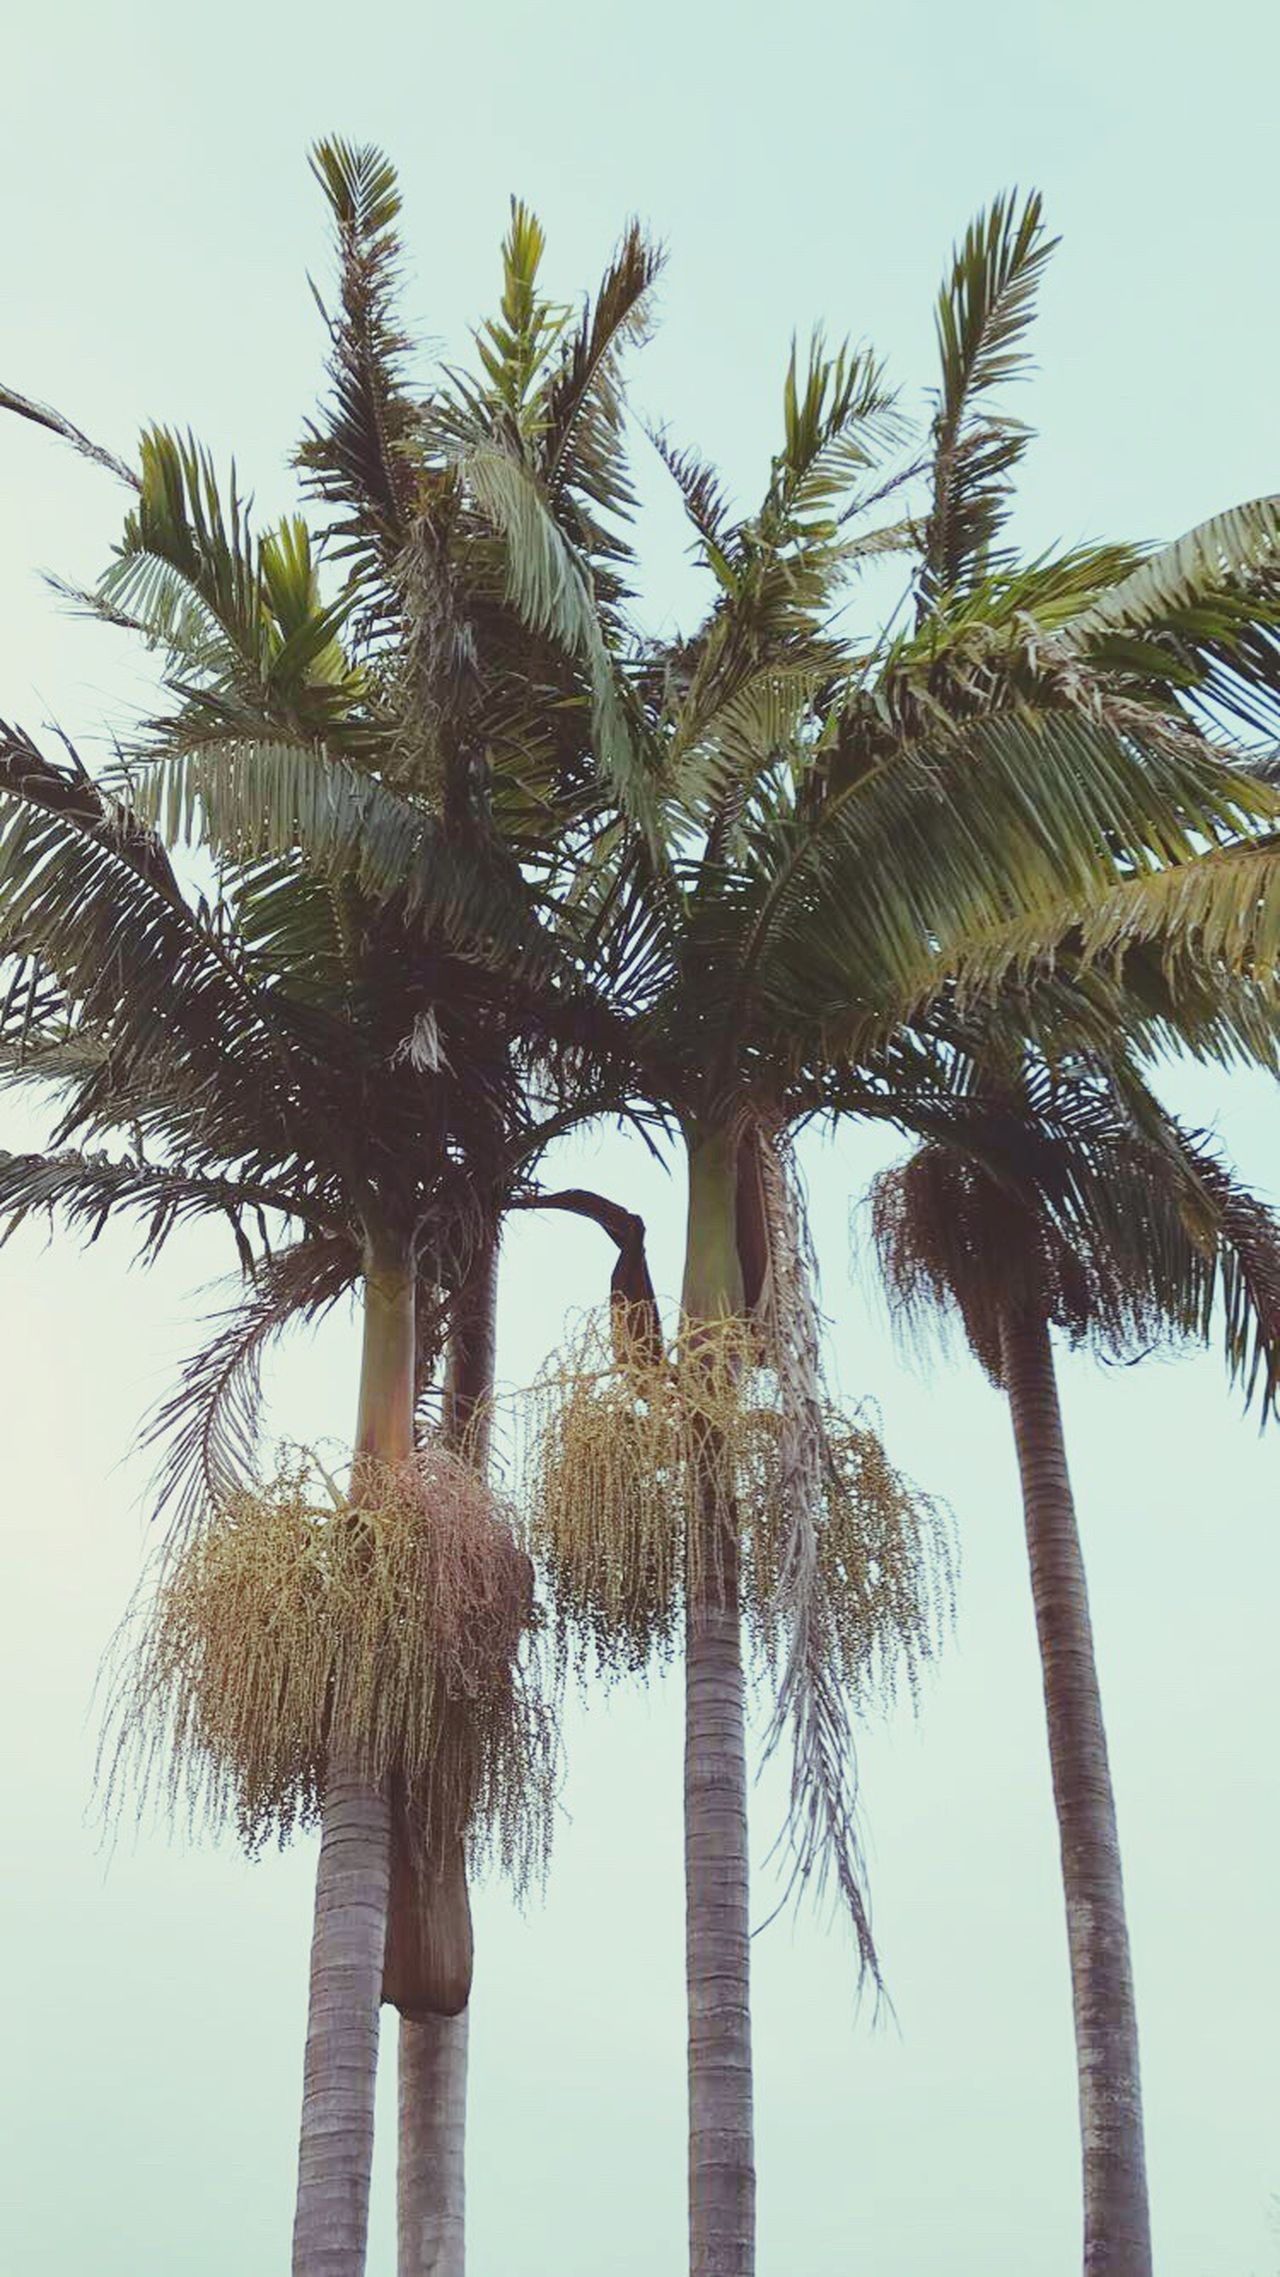 Palm Tree Nature Tree Trunk Outdoors Sky Tree San Diego California Photography Nature Summer Green Blue Grey Sky Vintage Style America USA Travel Exploring Destination